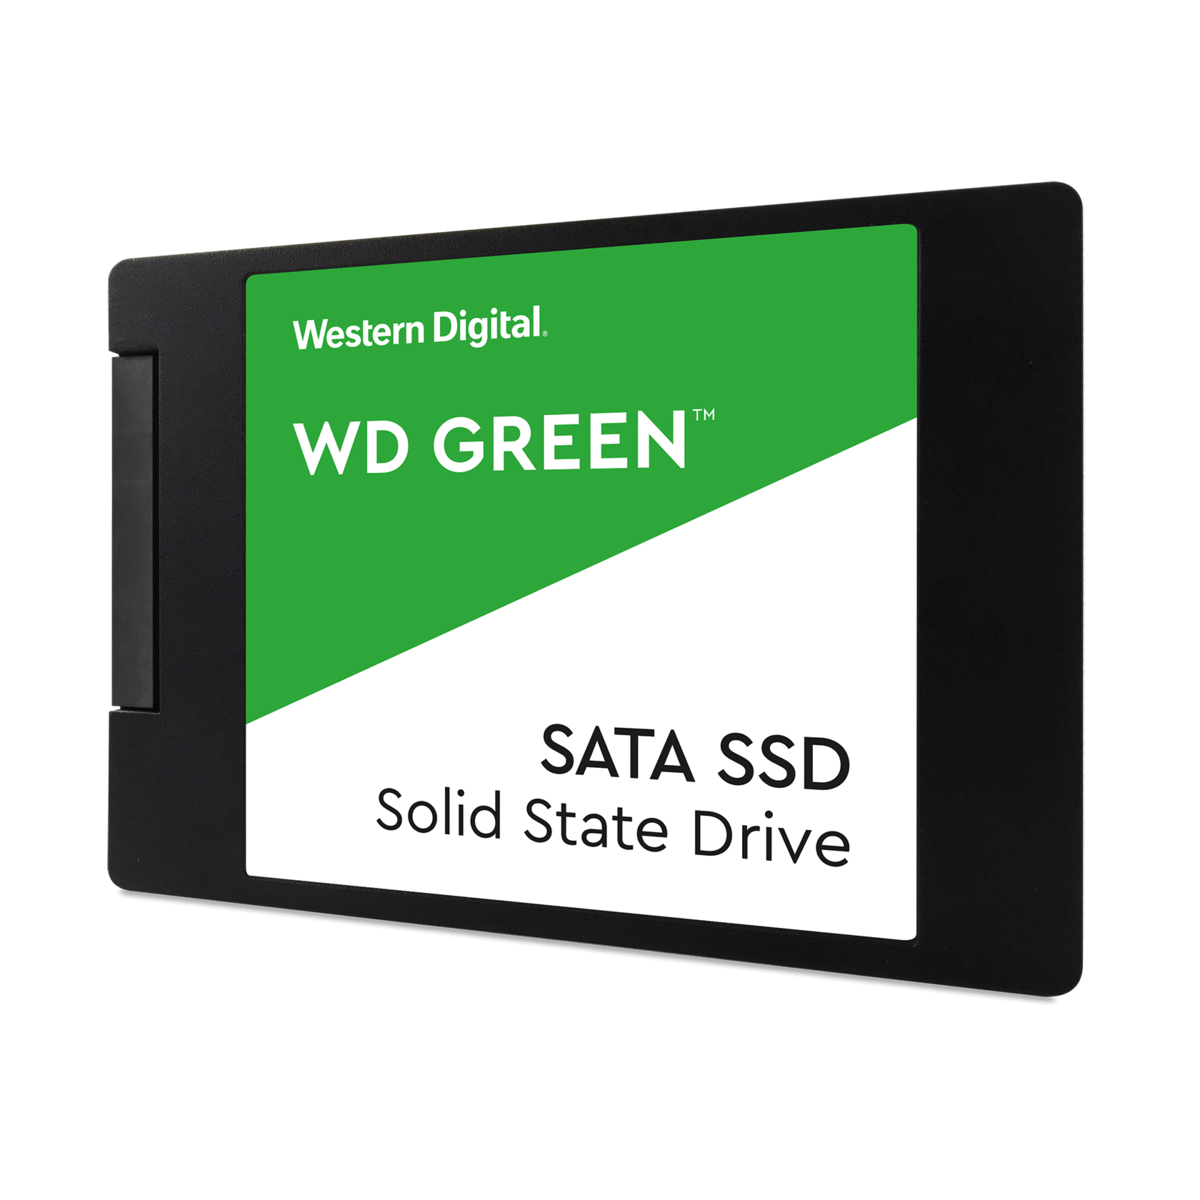 WD Green 2.5 Internal Solid State Drive SSD